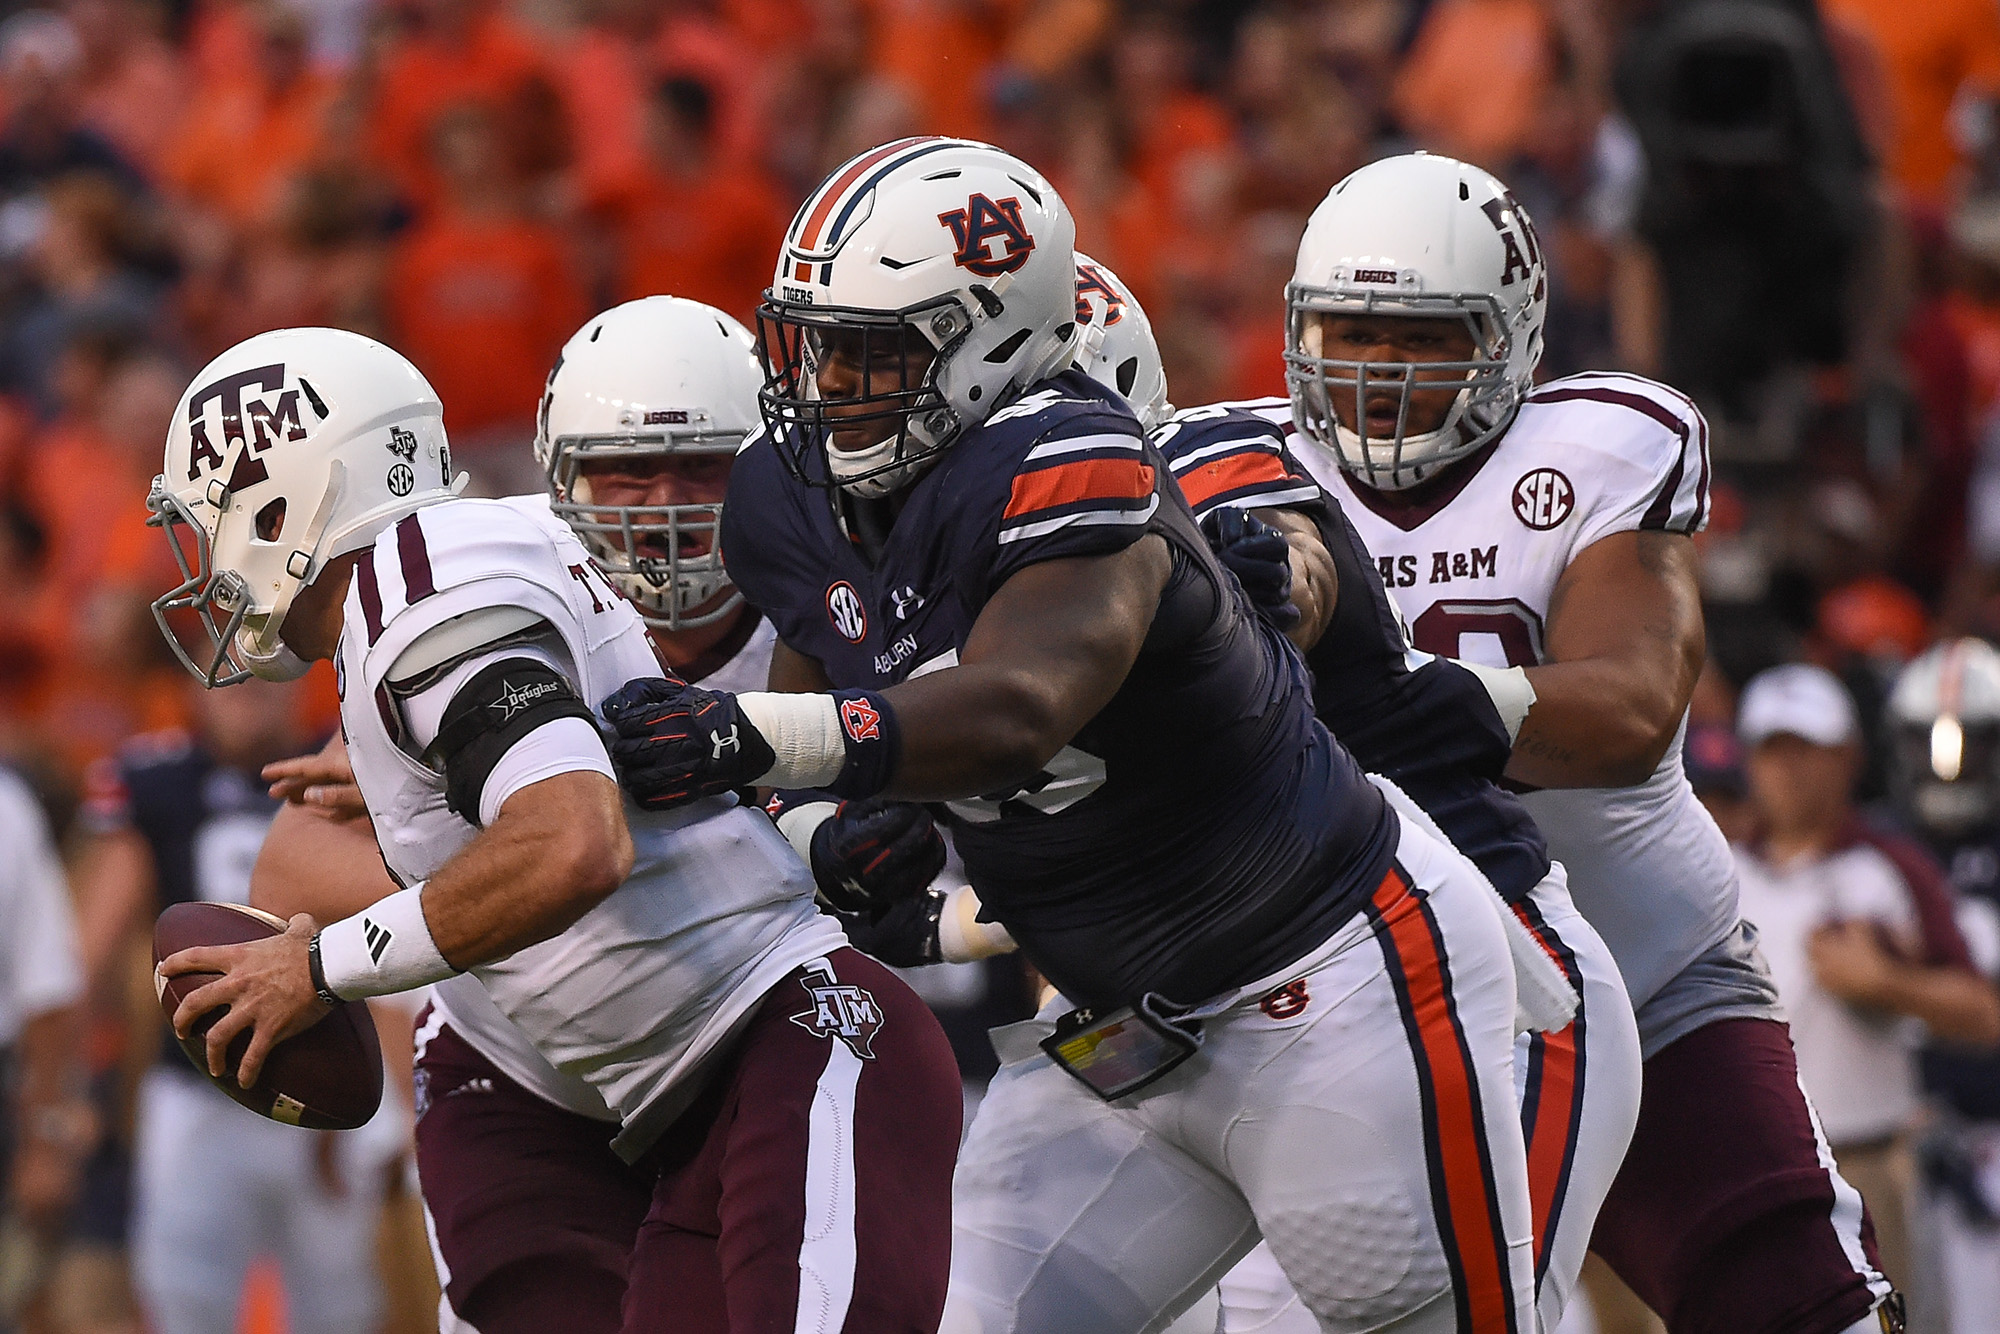 Dontavius Russell (95). Auburn vs Texas A&M football game on Saturday, Sept. 17, 2016 in Auburn, Ala.  Dakota Sumpter/Auburn Athletics